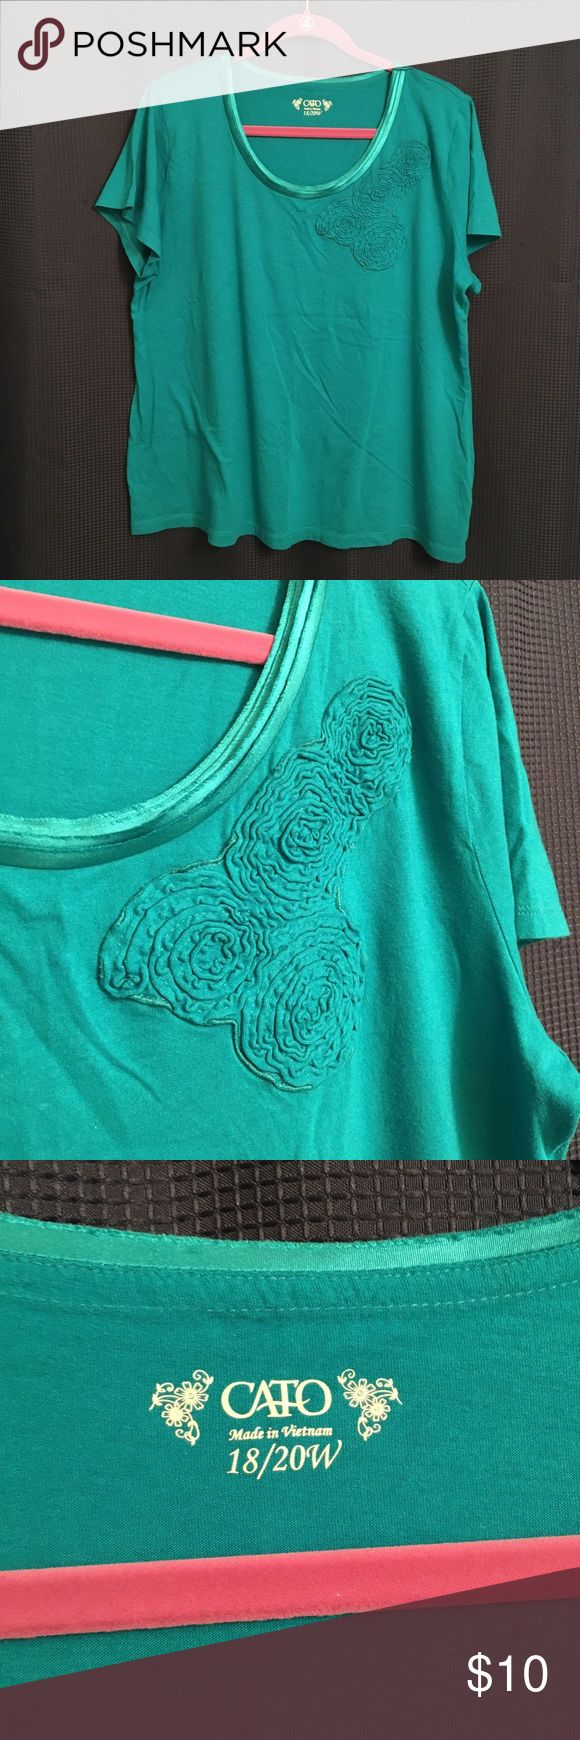 Teal blouse size 18/20W Excellent condition! Cato brand size 18/20 teal blouse. No tears or stains! Like new! Cato Tops